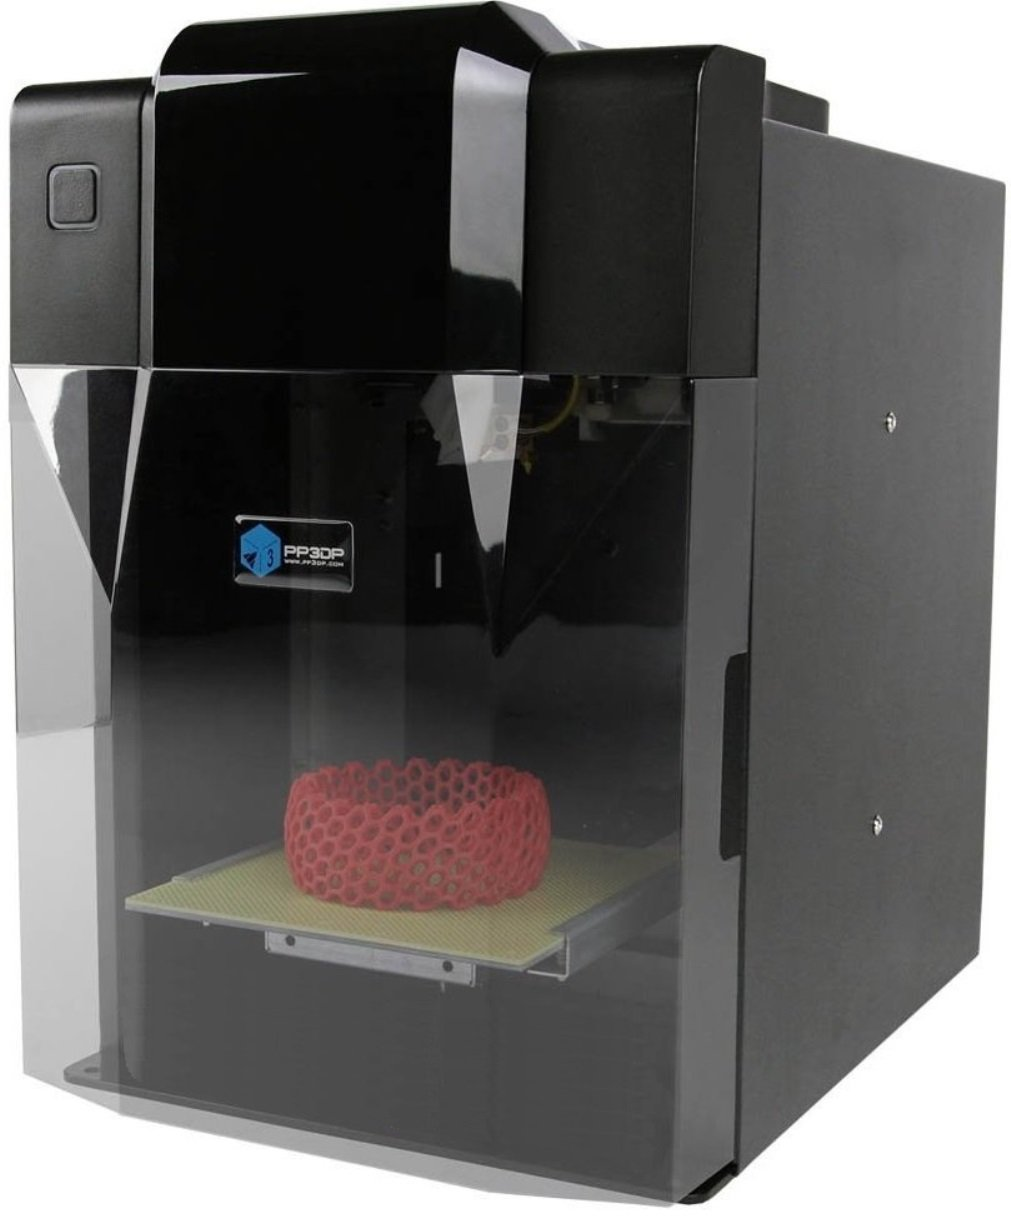 3D Printer PP3DP UP Mini